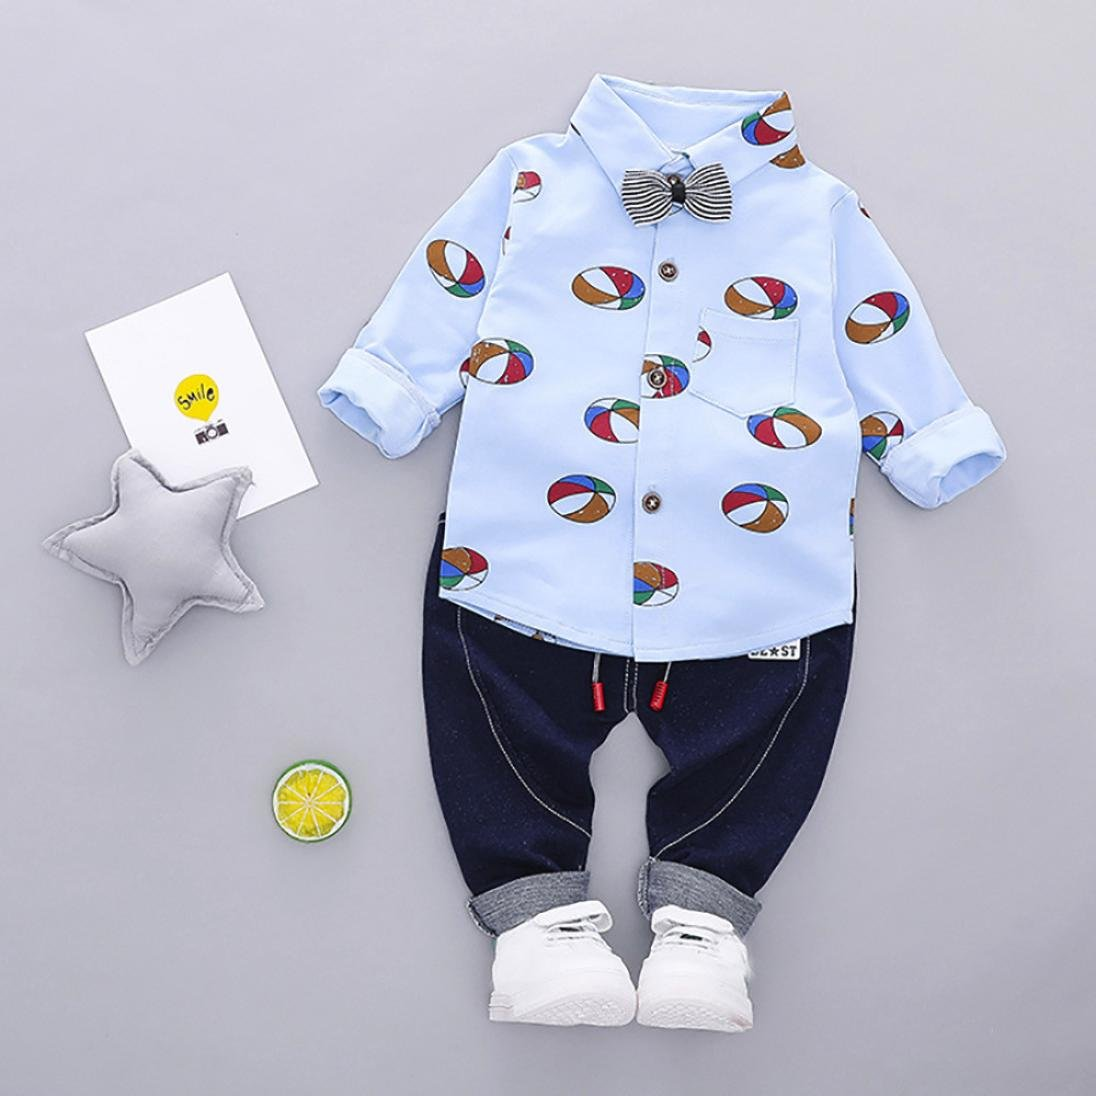 WARMSHOP 2 PC Outfits for Toddler Boys Bow Tie Full Sleeve Airballoon Pattern Tops Shirt Tee+Solid Elastic Pants